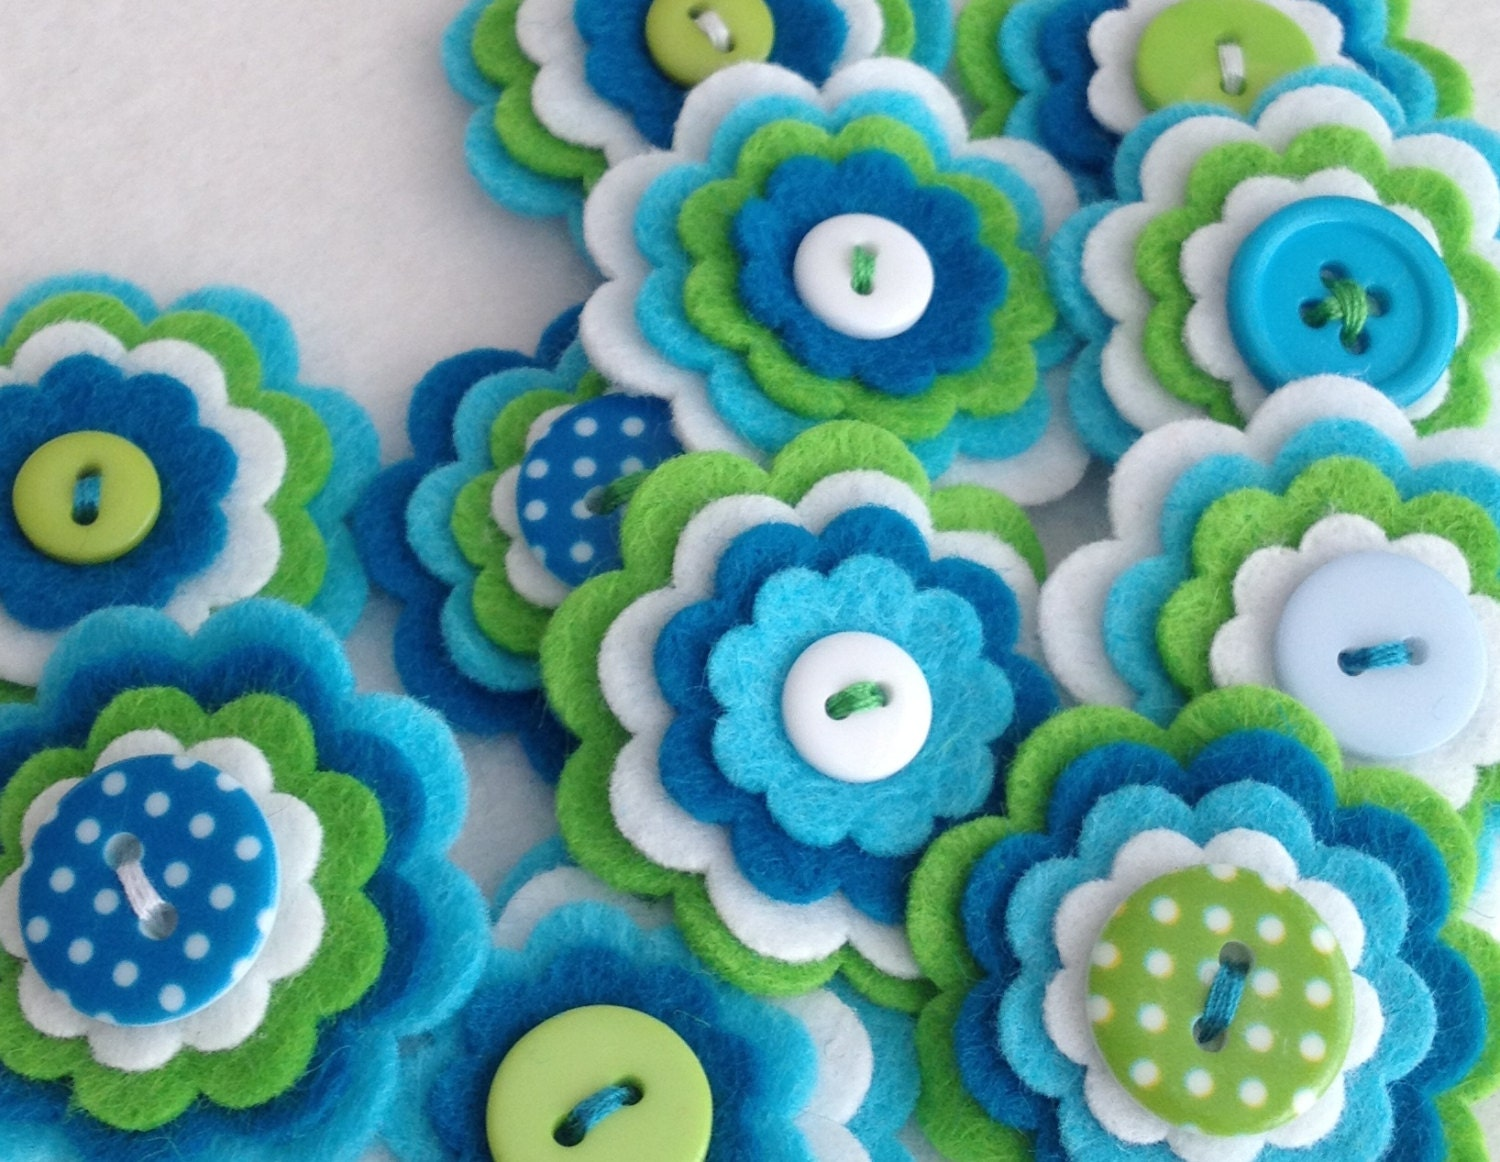 SUMMER x3 Handmade Layered Felt Flower Button Embellishments